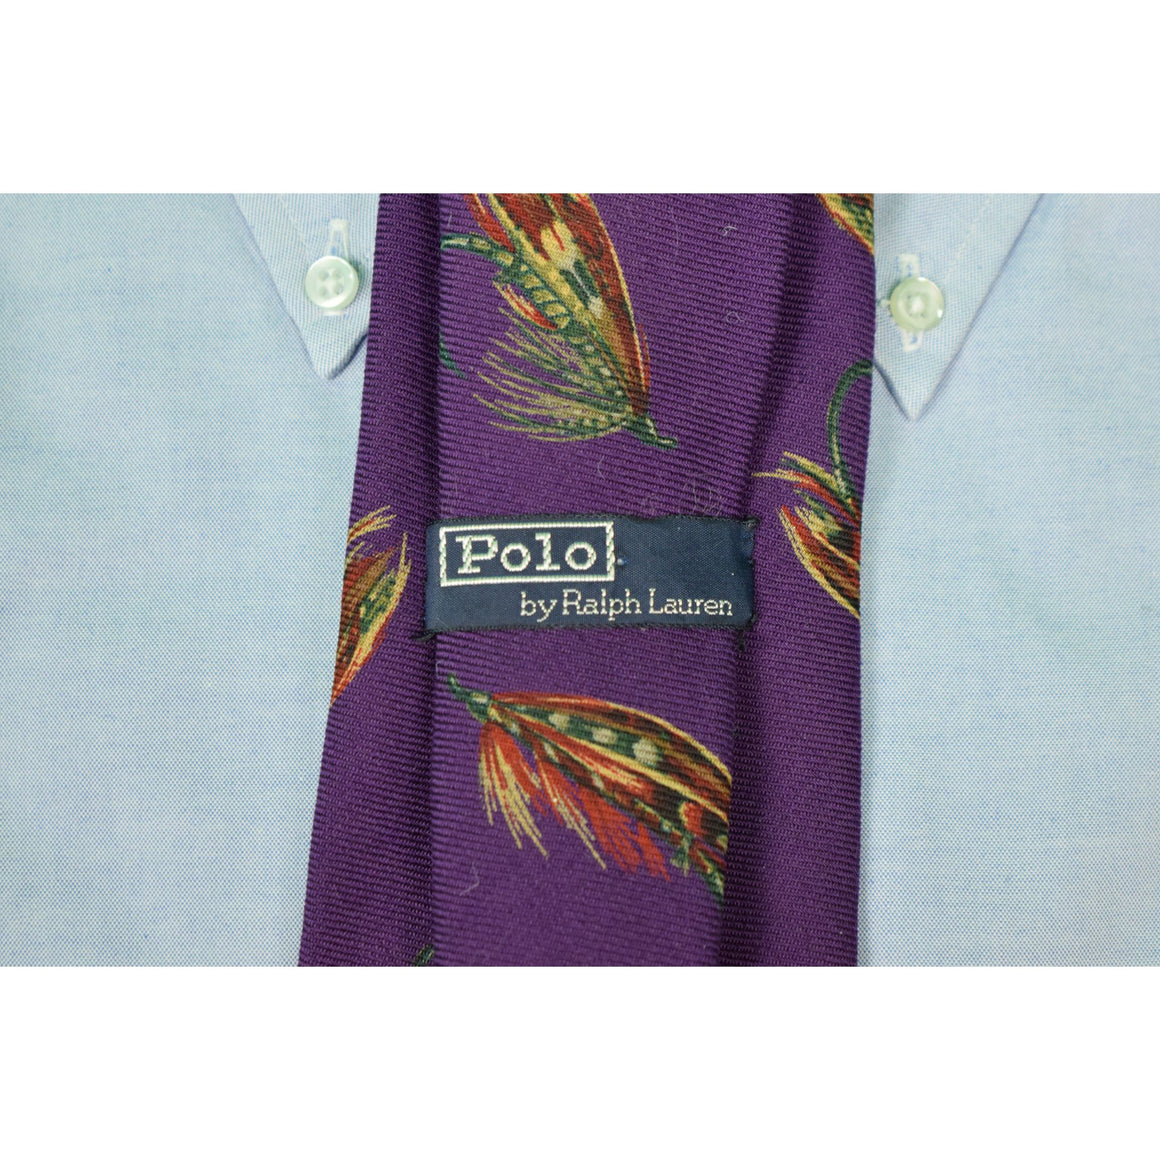 Polo by Ralph Lauren Wool Challis Trout Fly Purple Tie